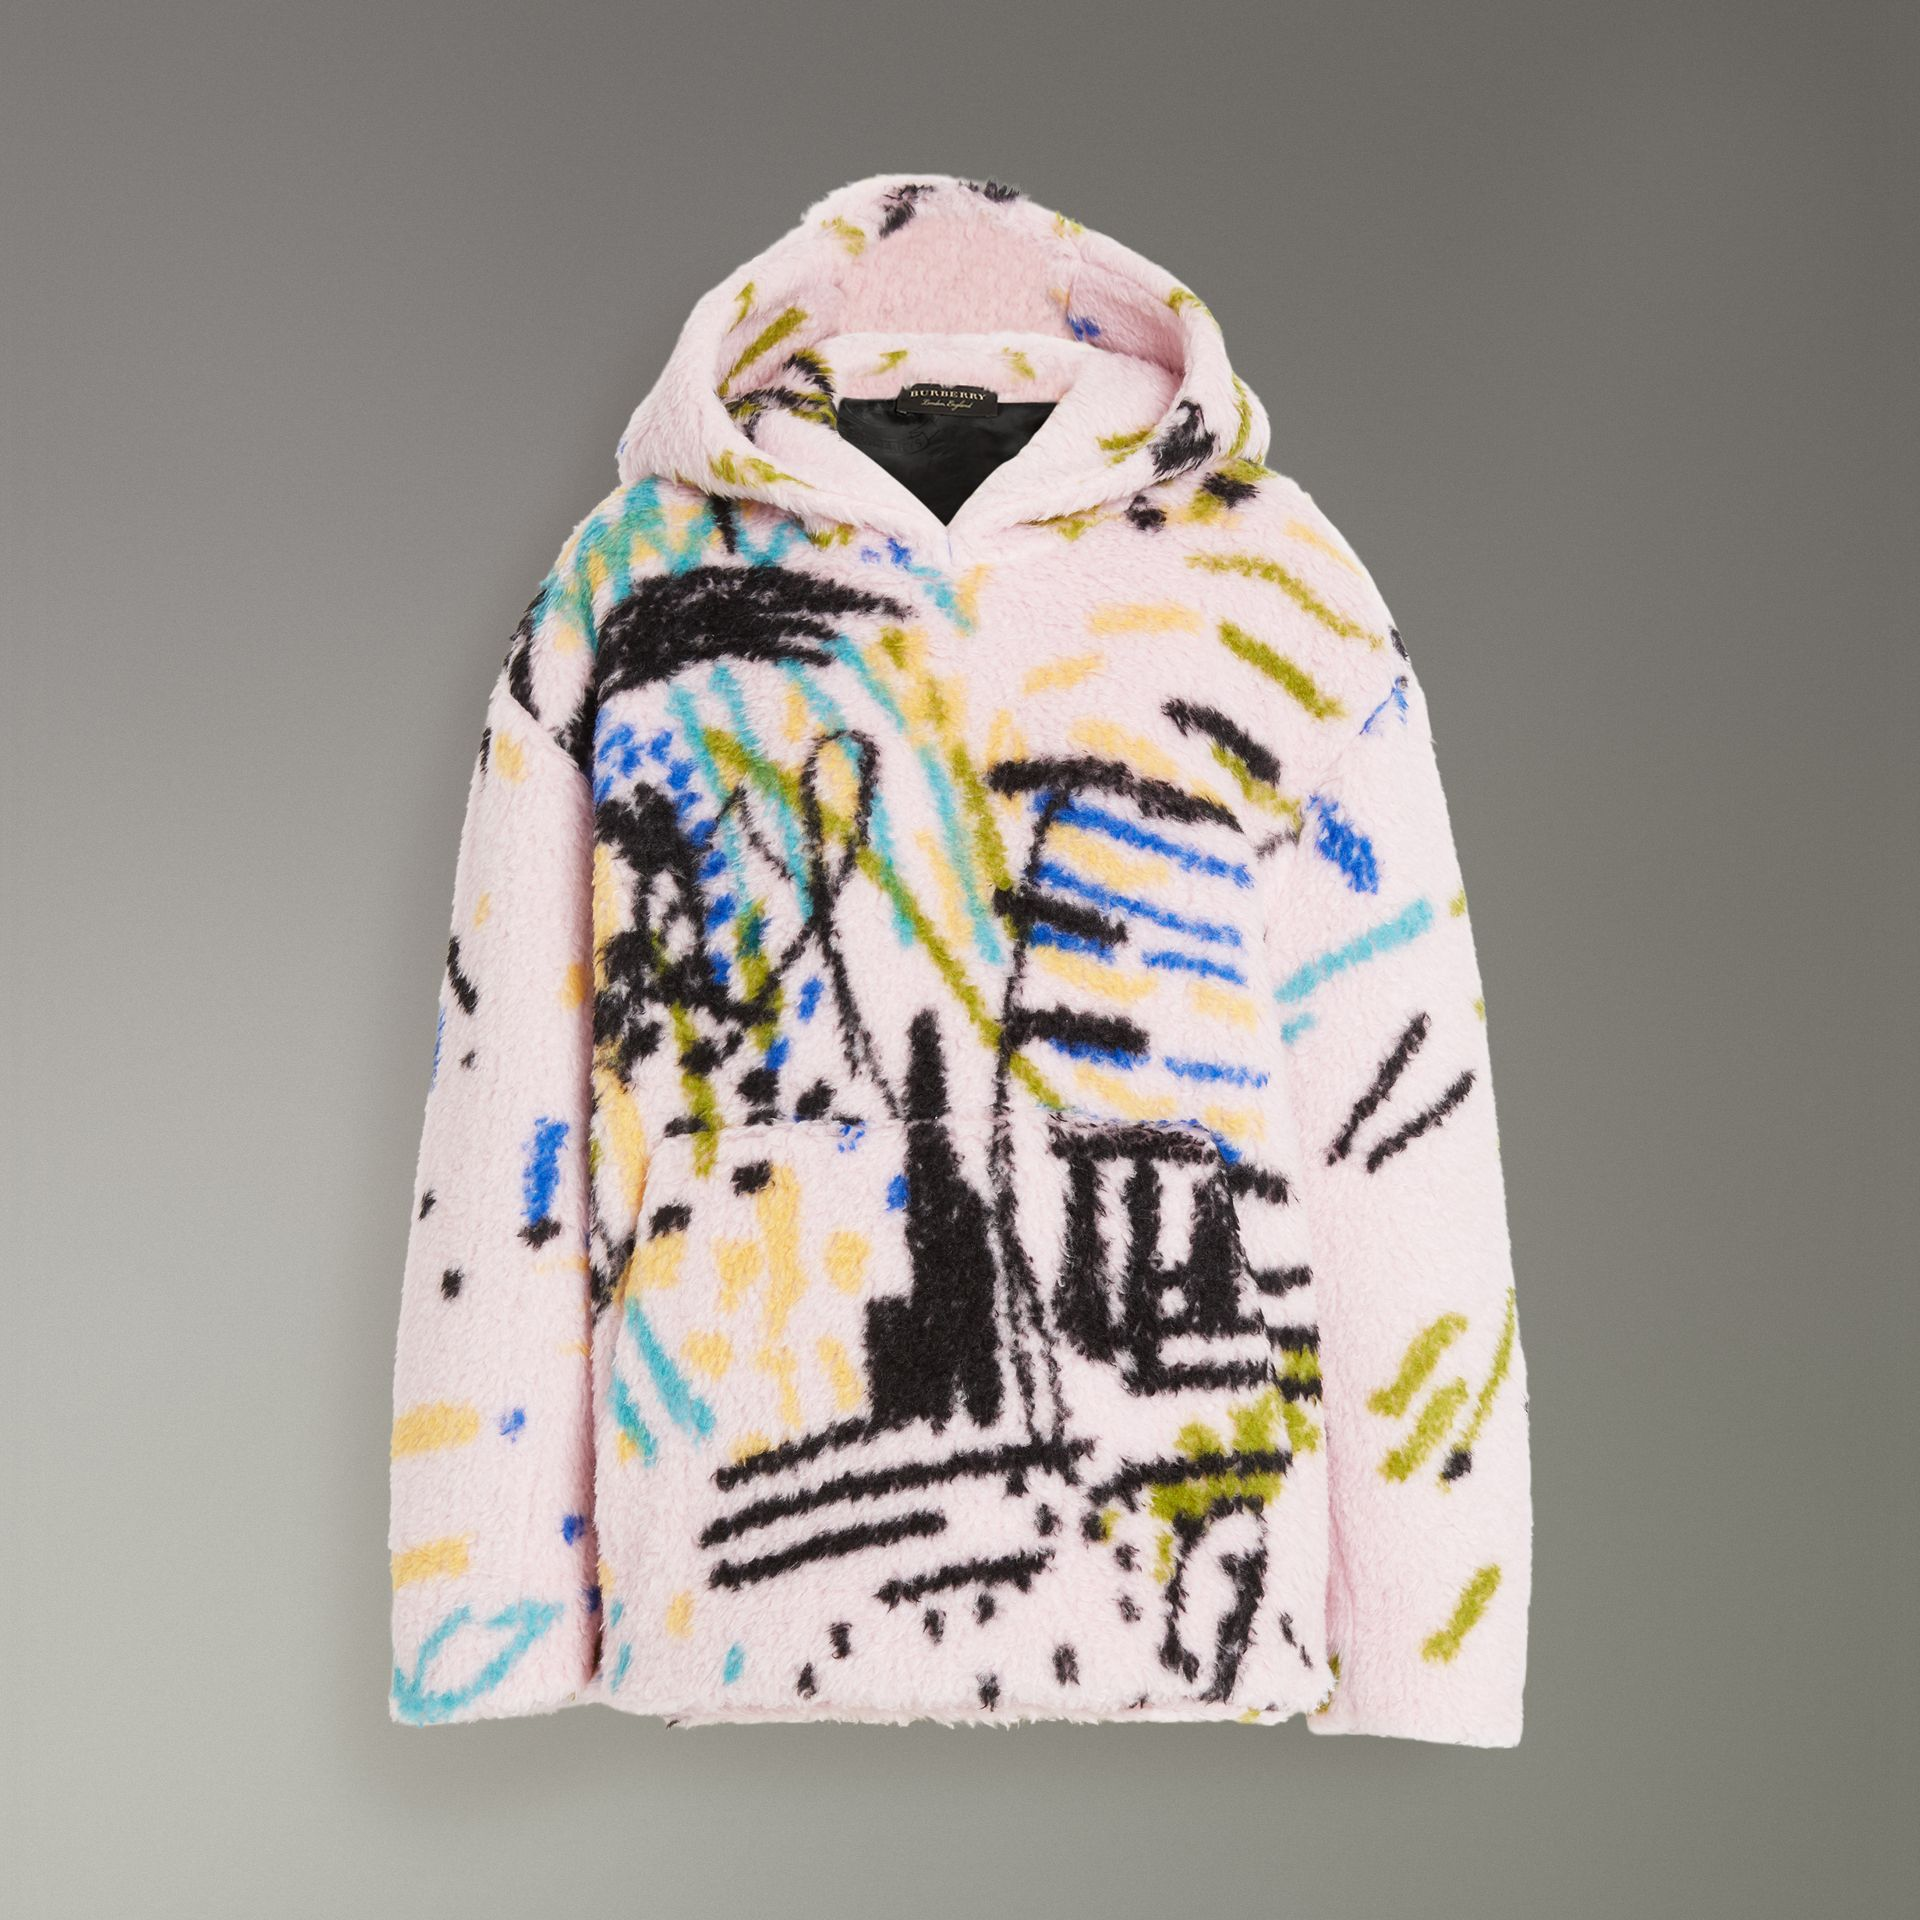 Graffiti Print Cashmere Silk Fleece Hoodie in Pale Rose - Women | Burberry - gallery image 3